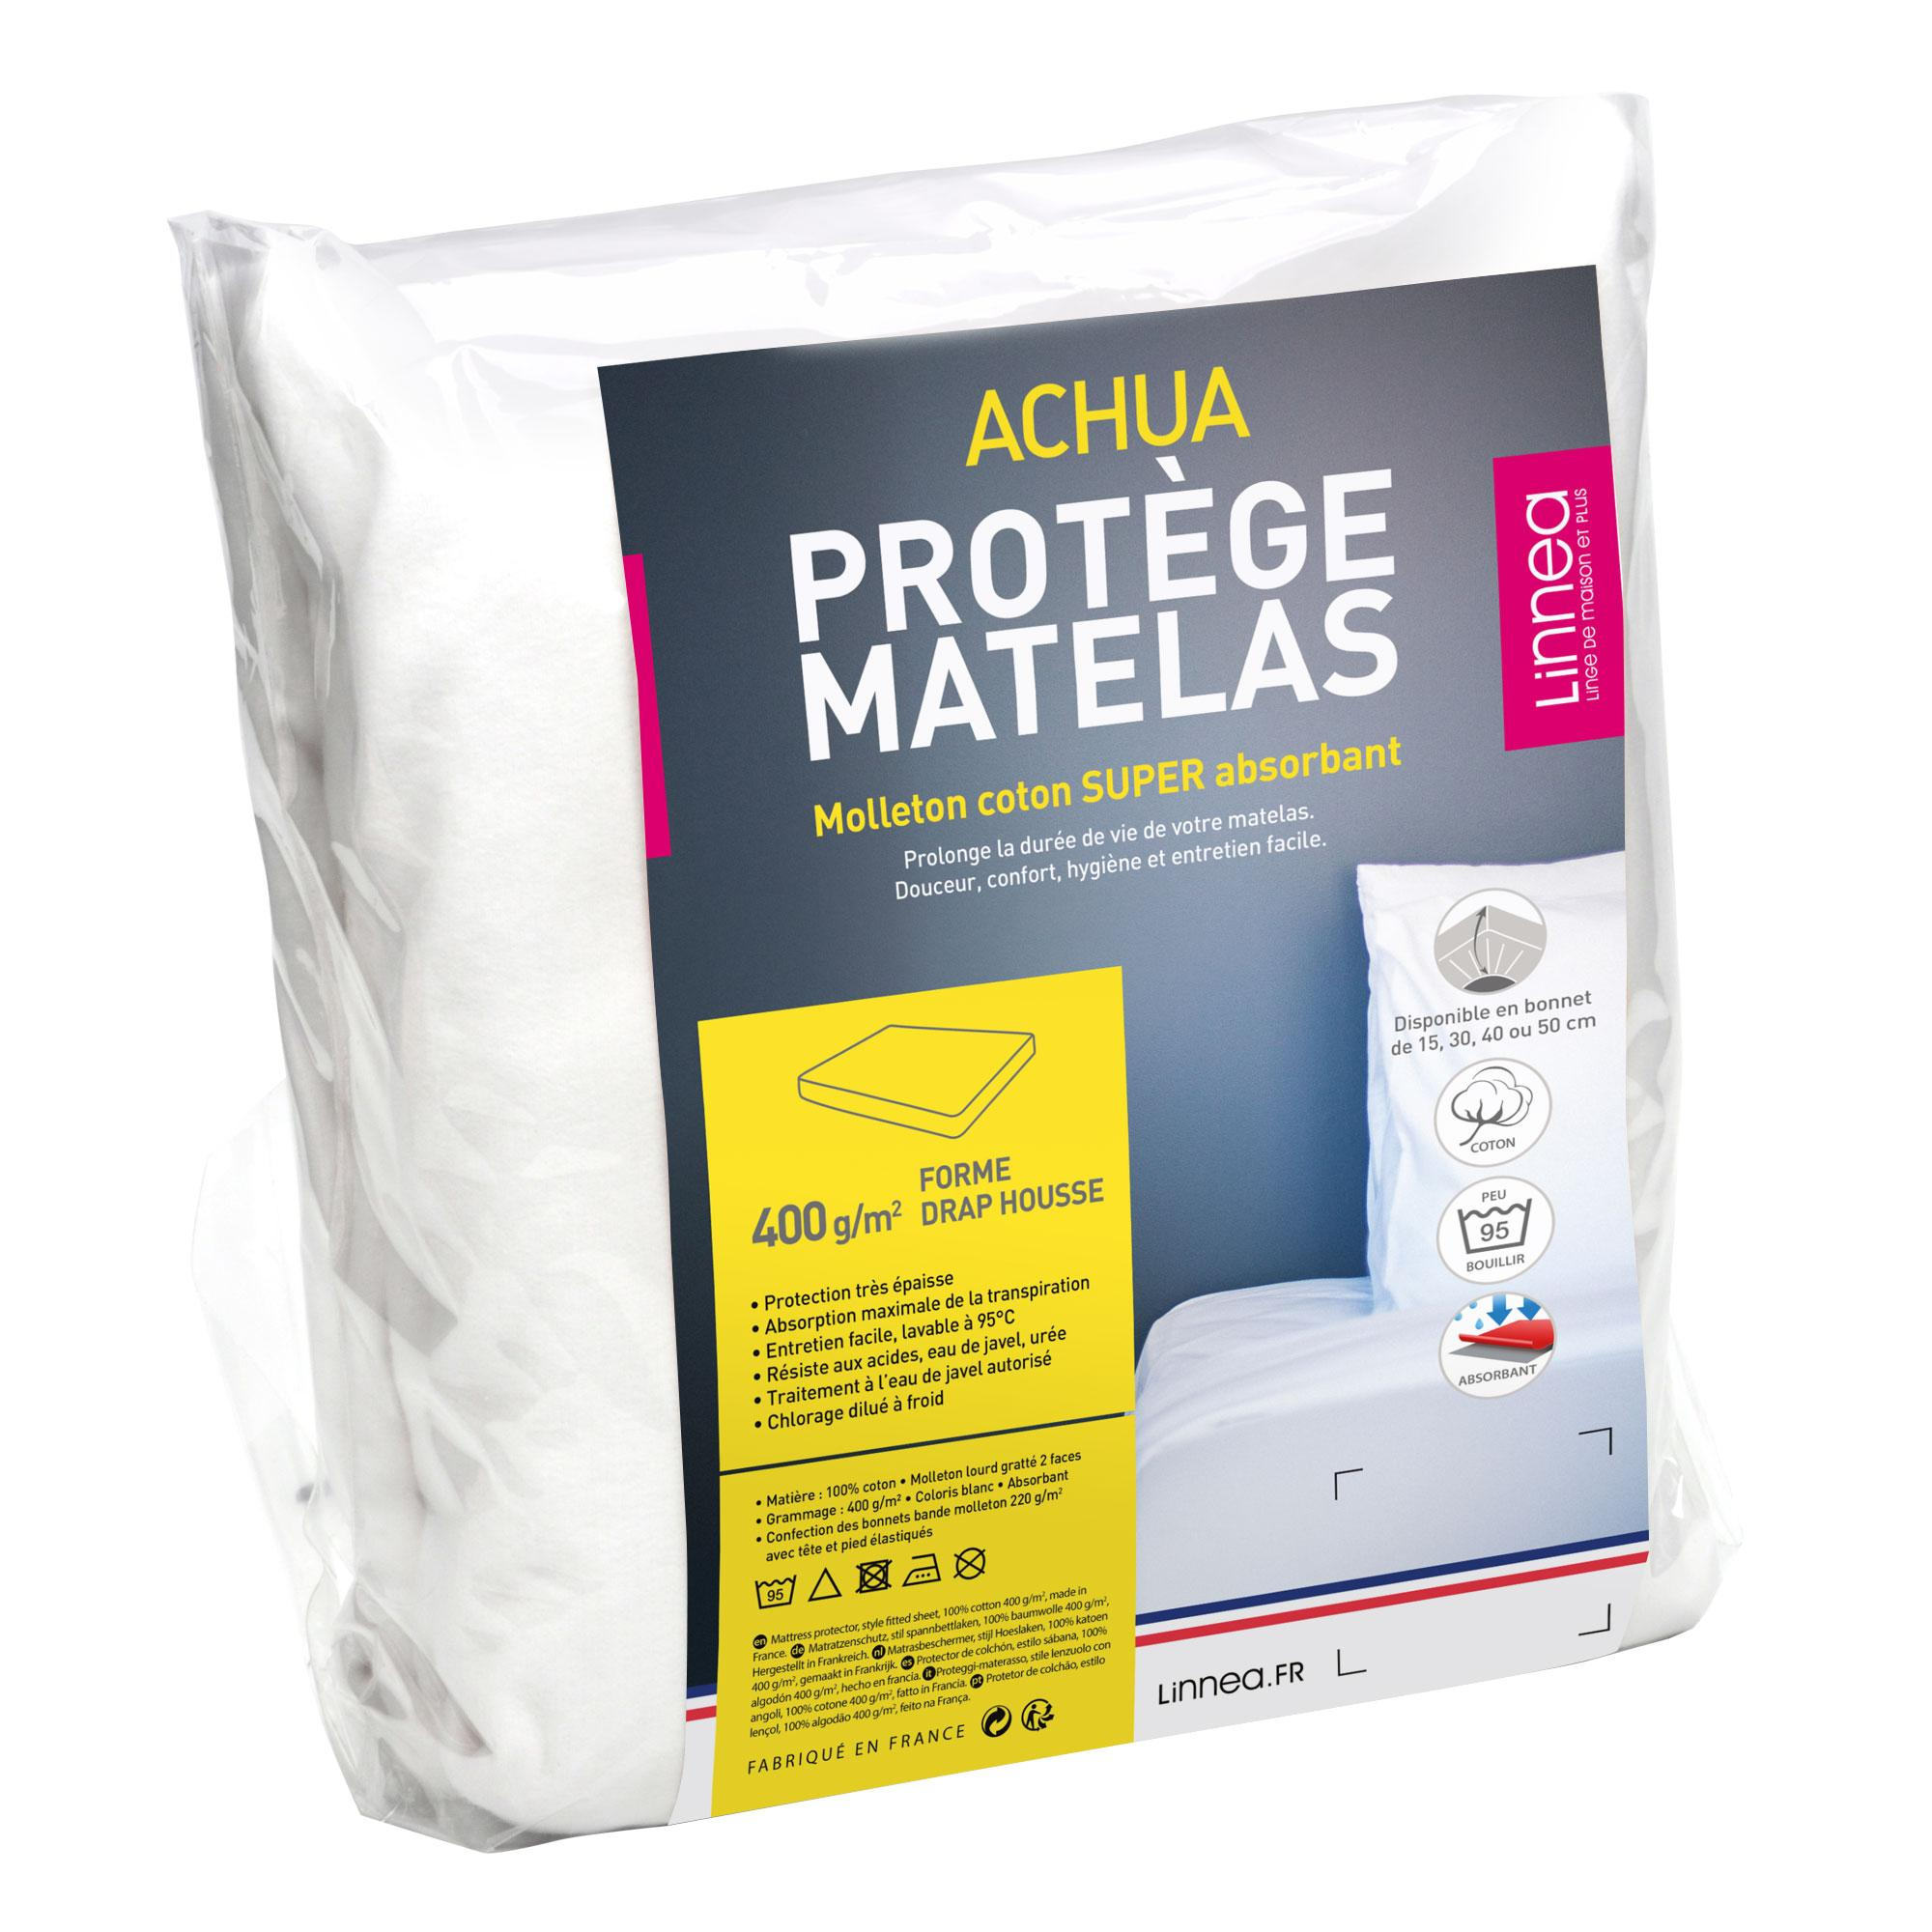 prot ge matelas 80x200 achua molleton 100 coton 400g m2 bonnet 30cm ebay. Black Bedroom Furniture Sets. Home Design Ideas